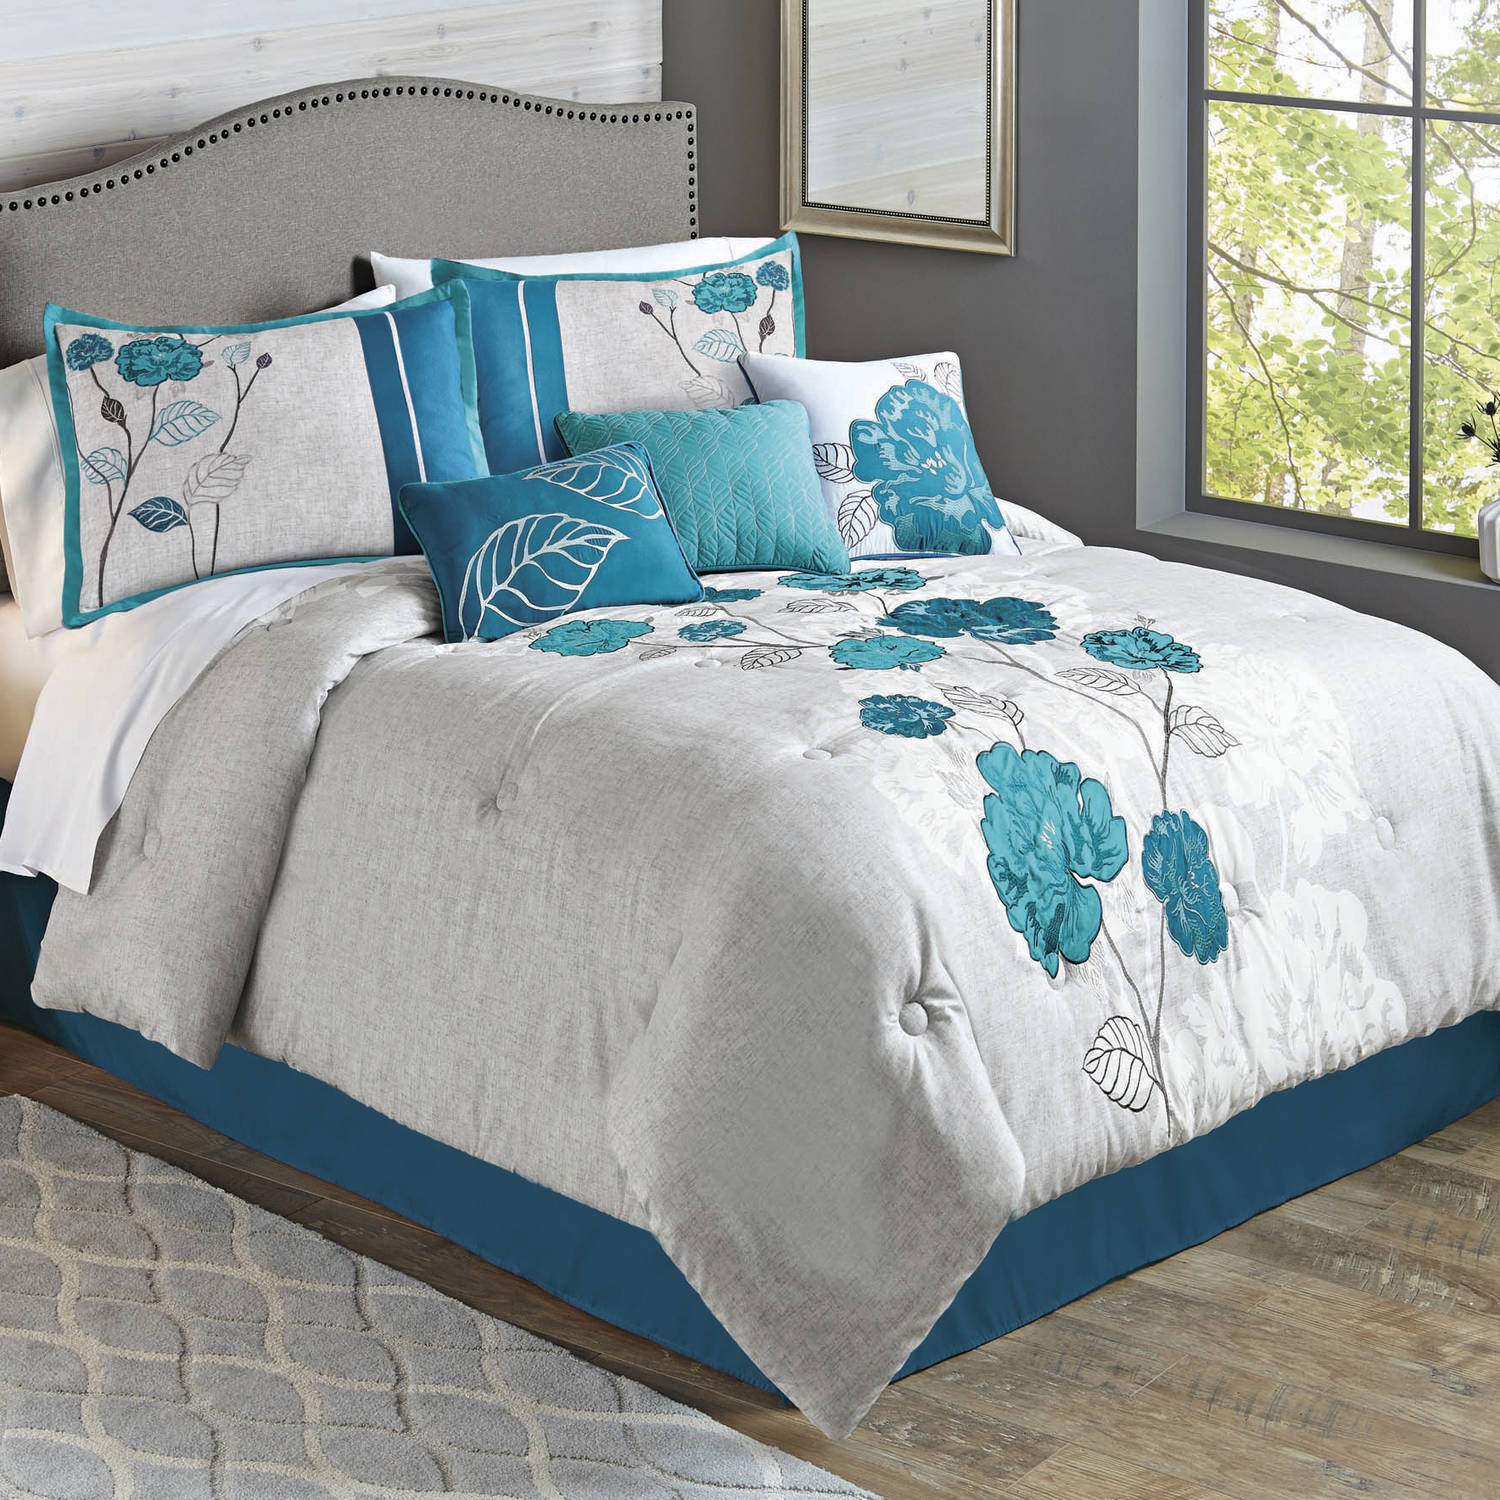 grey dp intelligent piece comforter microfiber design geometric aqua soft chevron teal sets light size set queen com bed adel ultra seasons full amazon